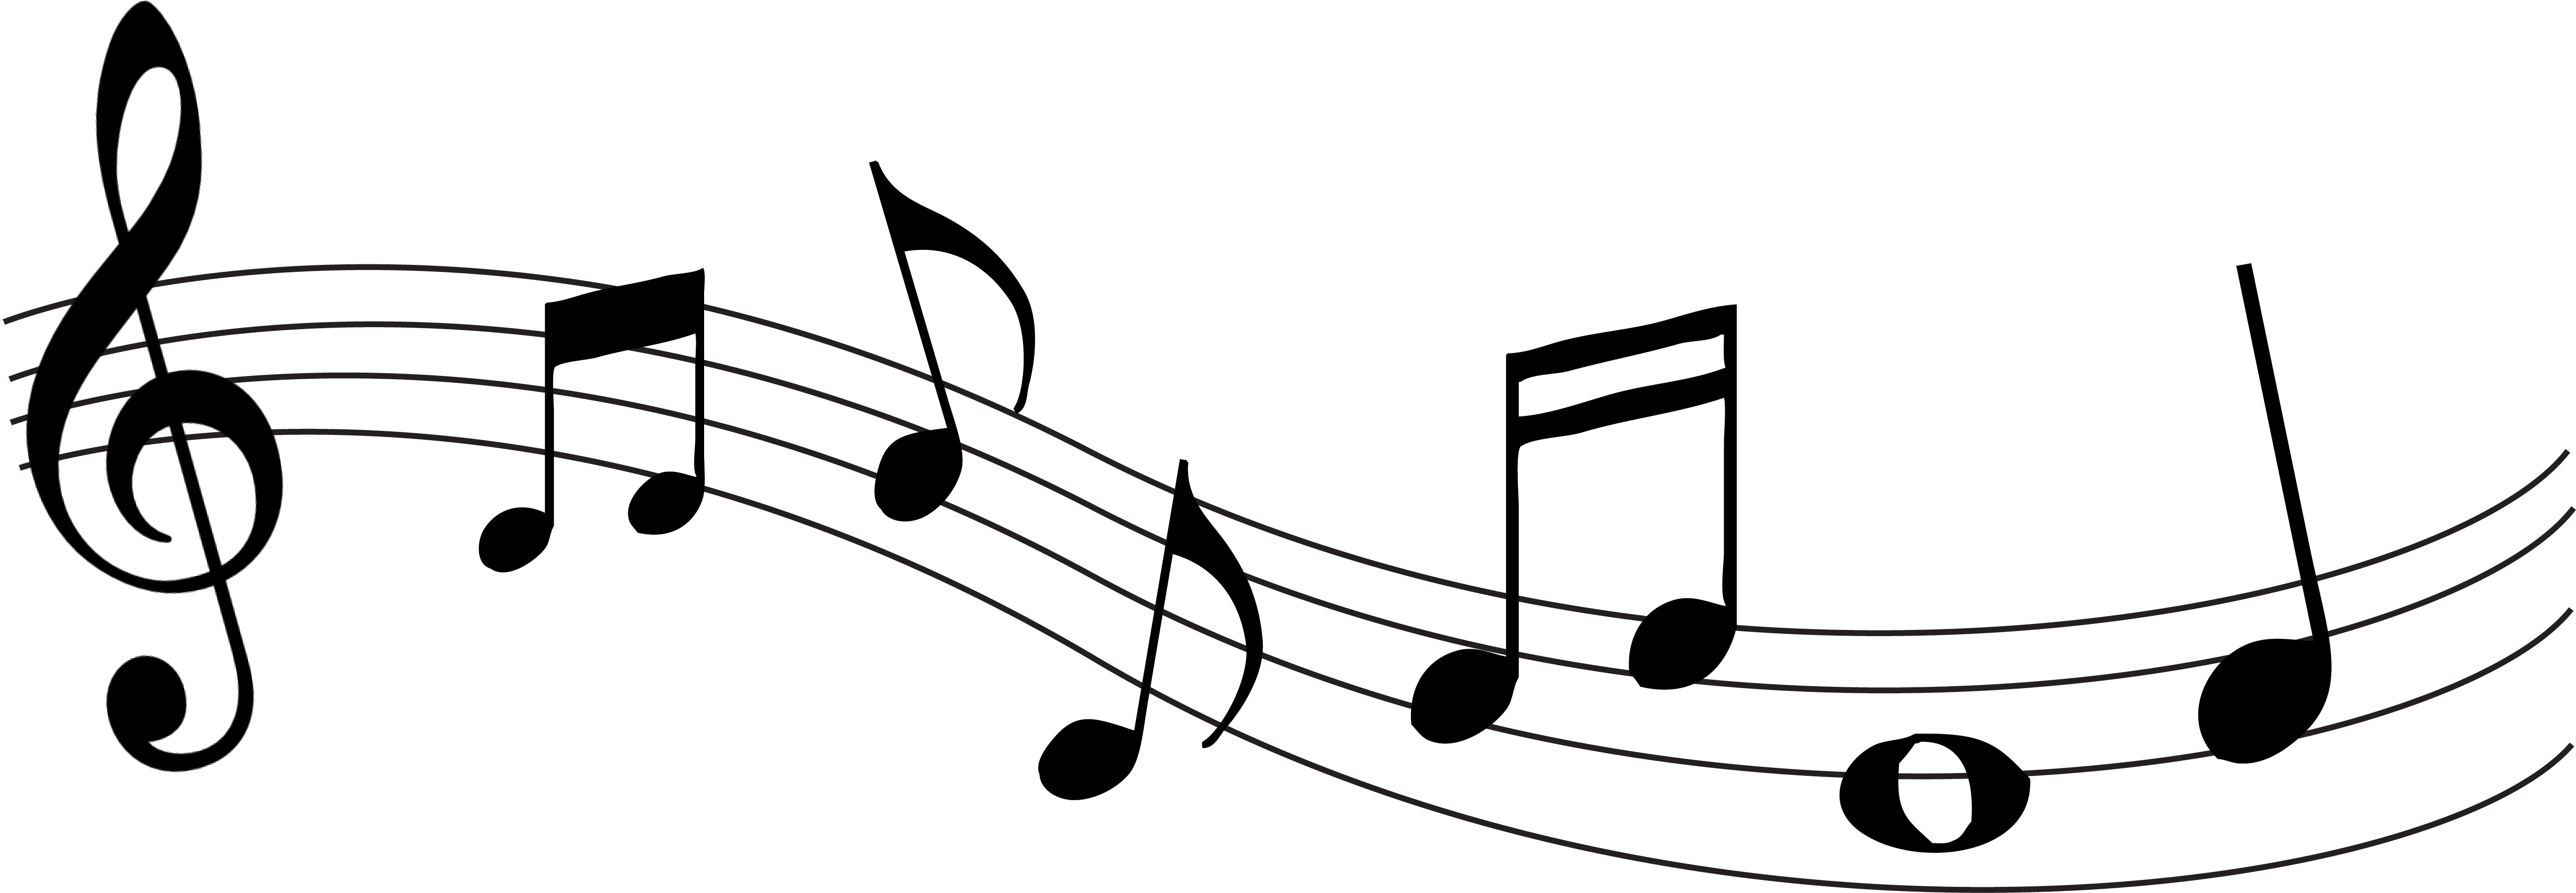 Images of music symbols free download best images of music 5495x1905 music notes clipart creative buycottarizona